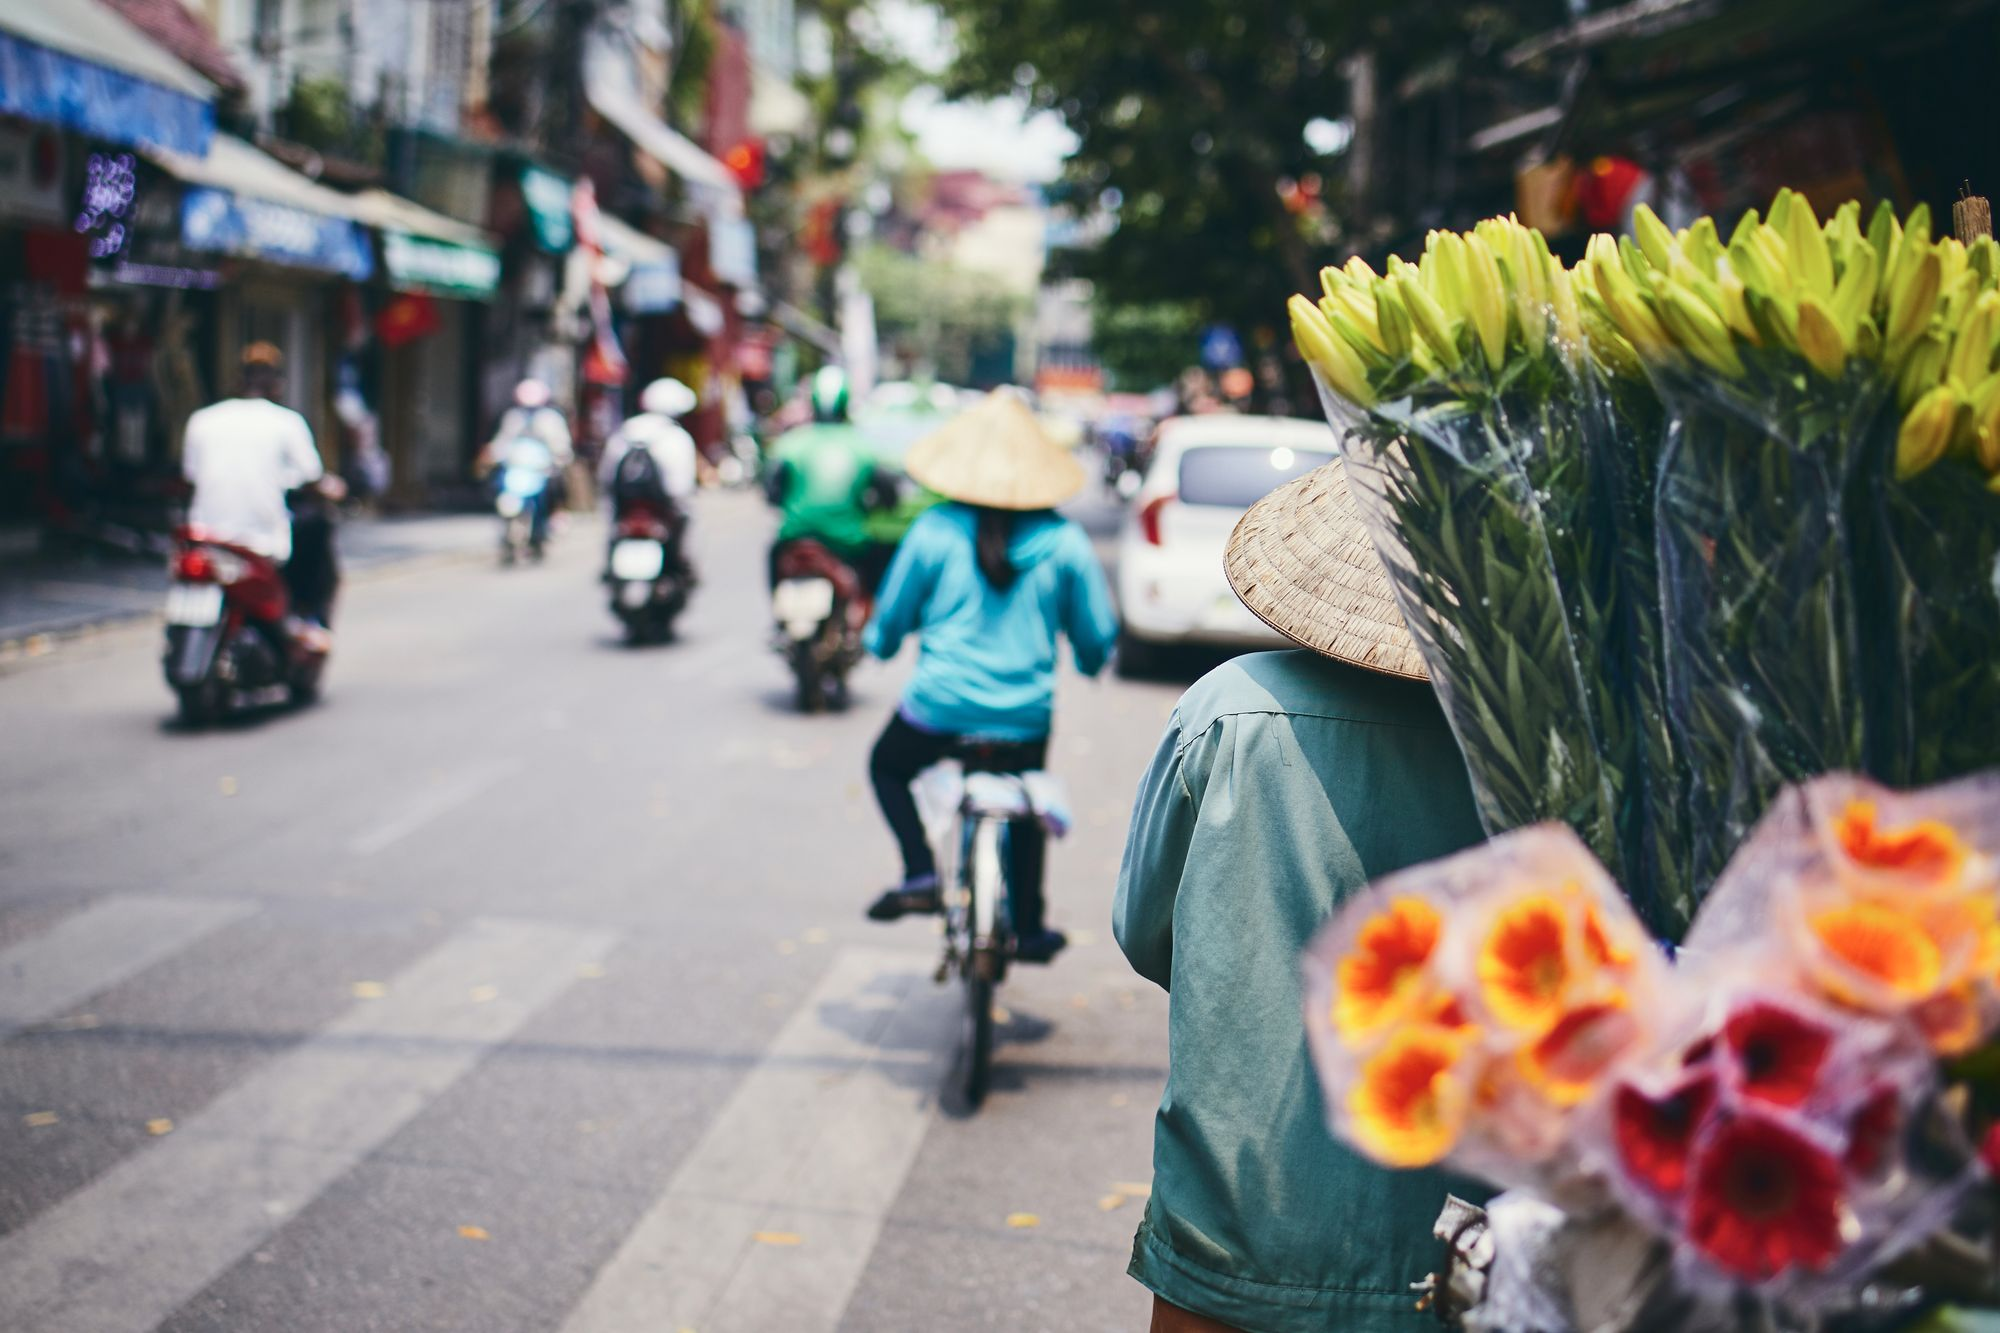 City life in street of old quarter in Hanoi. Flower vendor in traditional  conical hat.